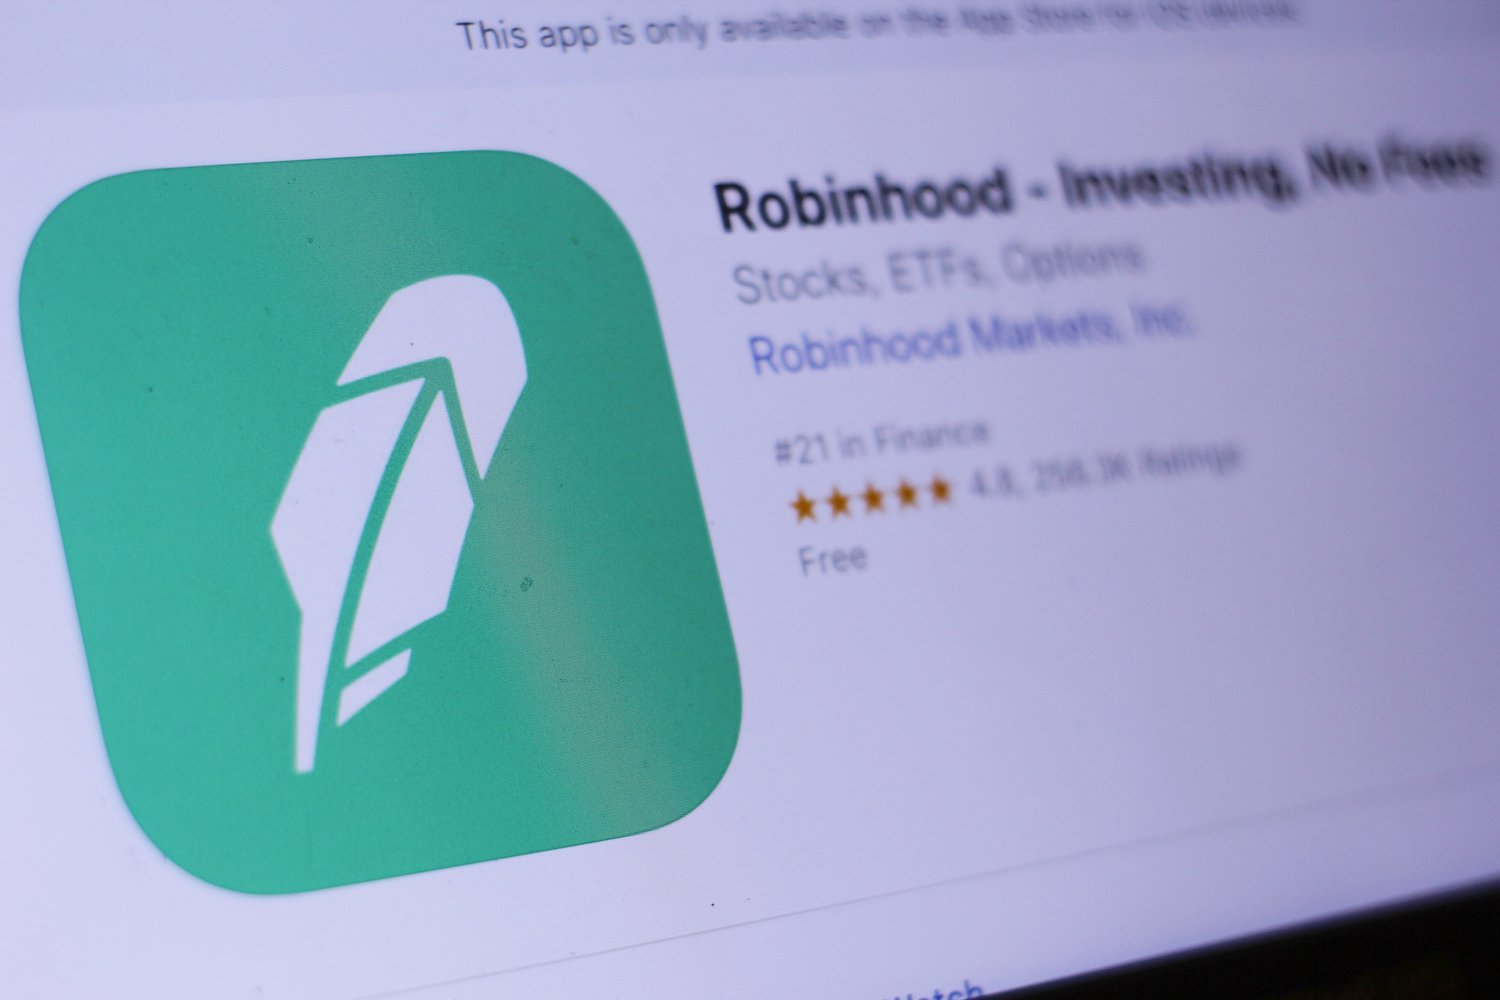 Litecoin, Bitcoin Cash Are Latest Crypto Additions to Robinhood Investing App